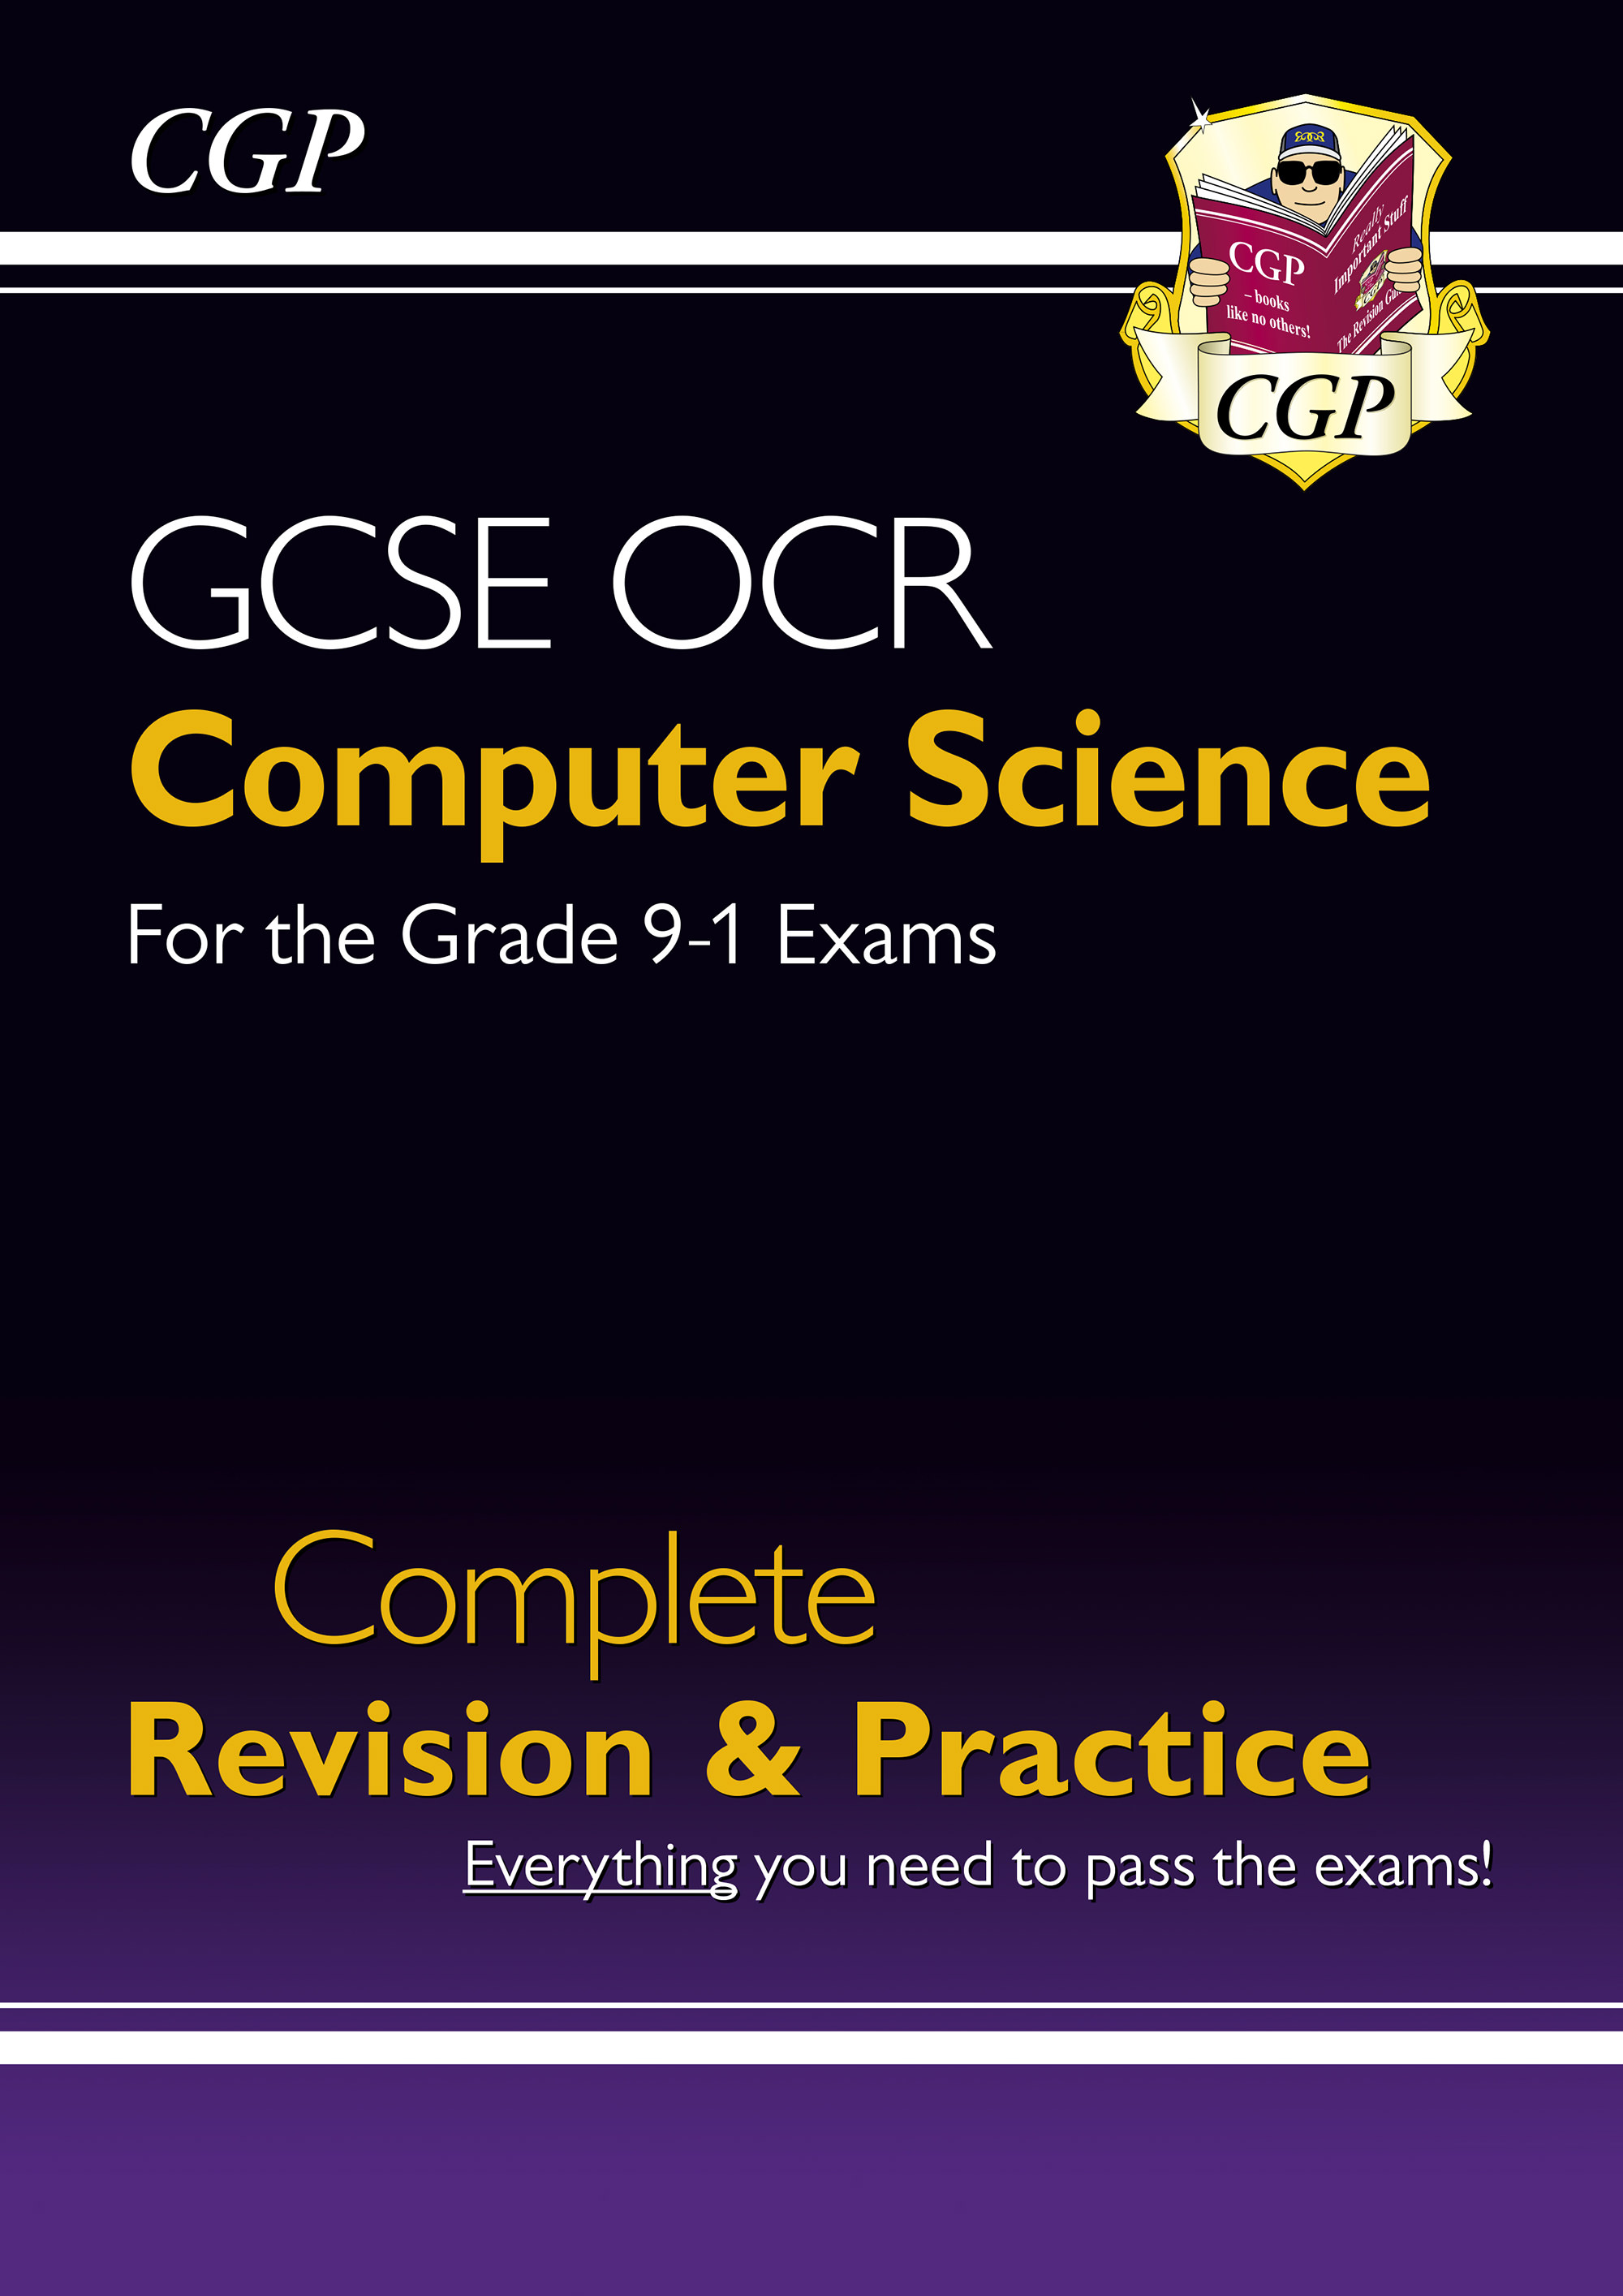 COS41DK - GCSE Computer Science OCR Complete Revision & Practice - for exams in 2021